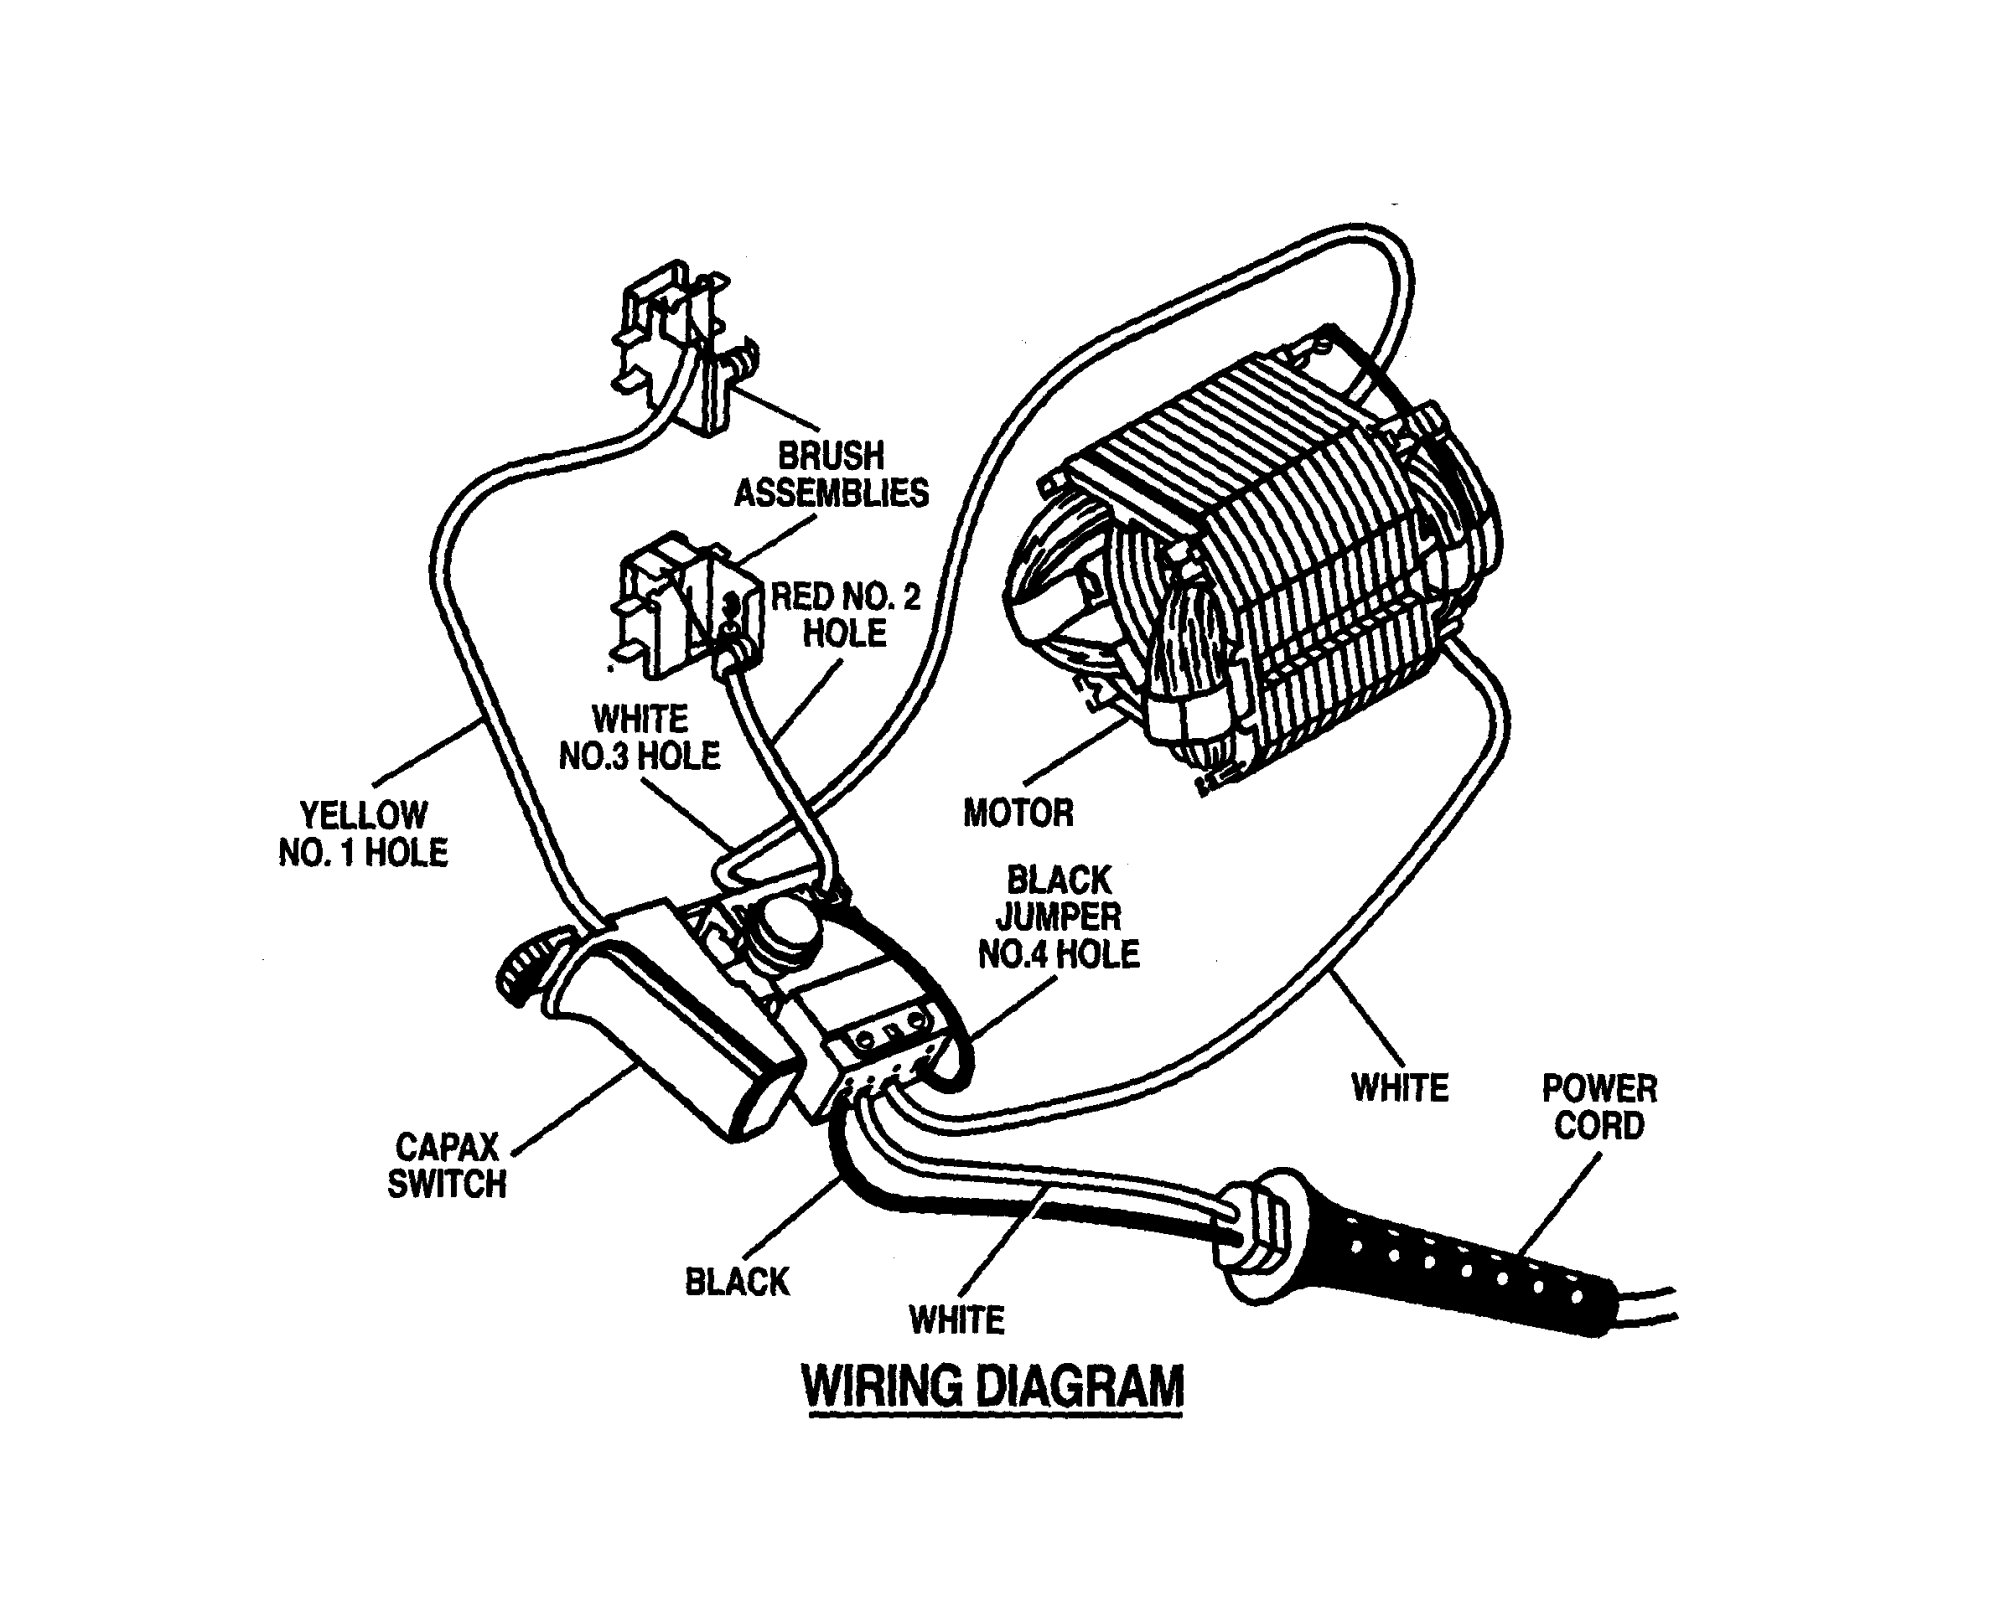 hight resolution of electric drill motor wiring diagram wiring diagram advance metabo drill wiring diagram drill wiring diagram